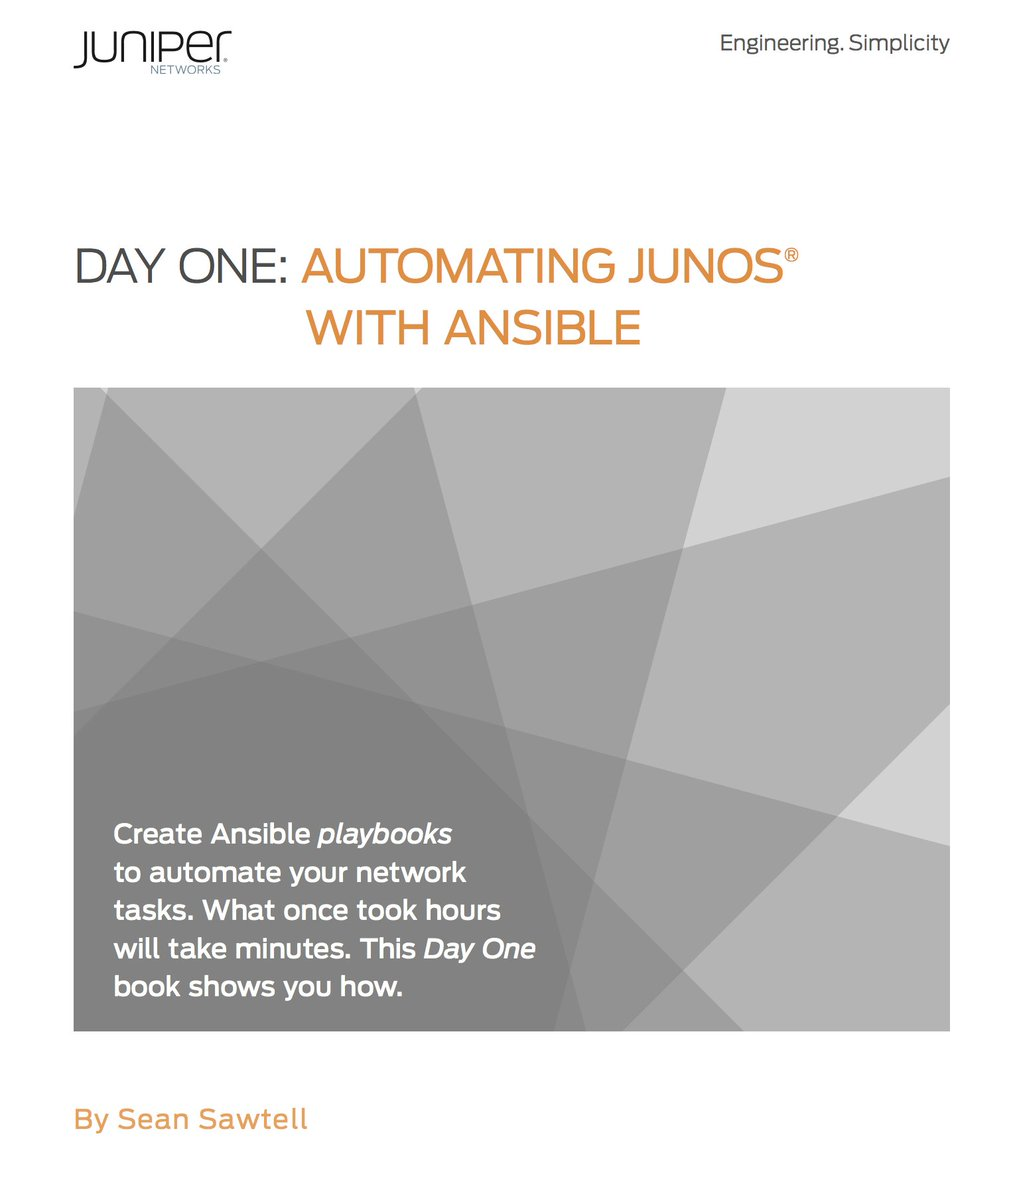 Junos Automation]]] on Twitter: